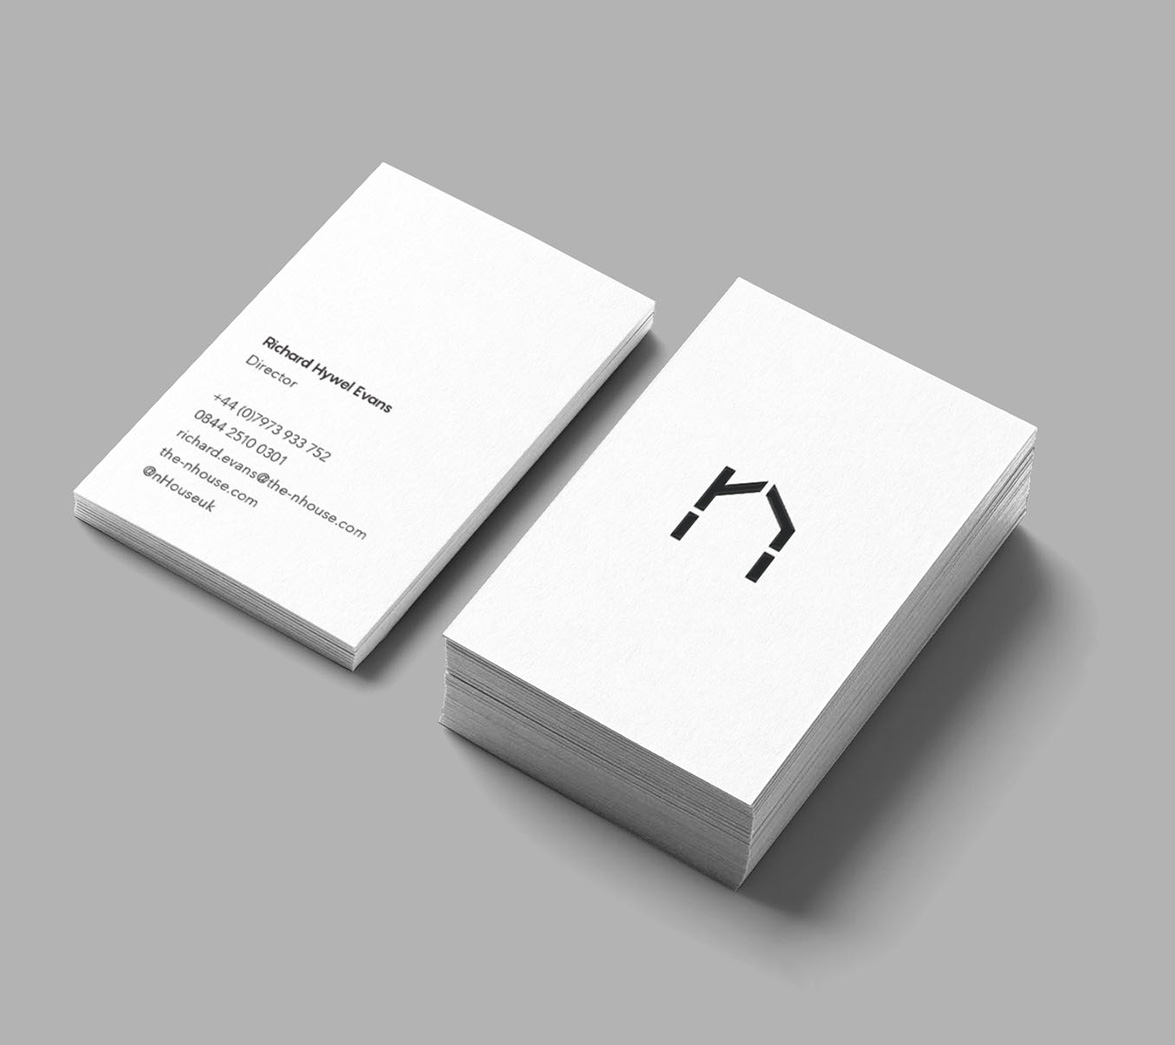 Business cards for architecture startup brand nHouse, designed by White Bear Studio